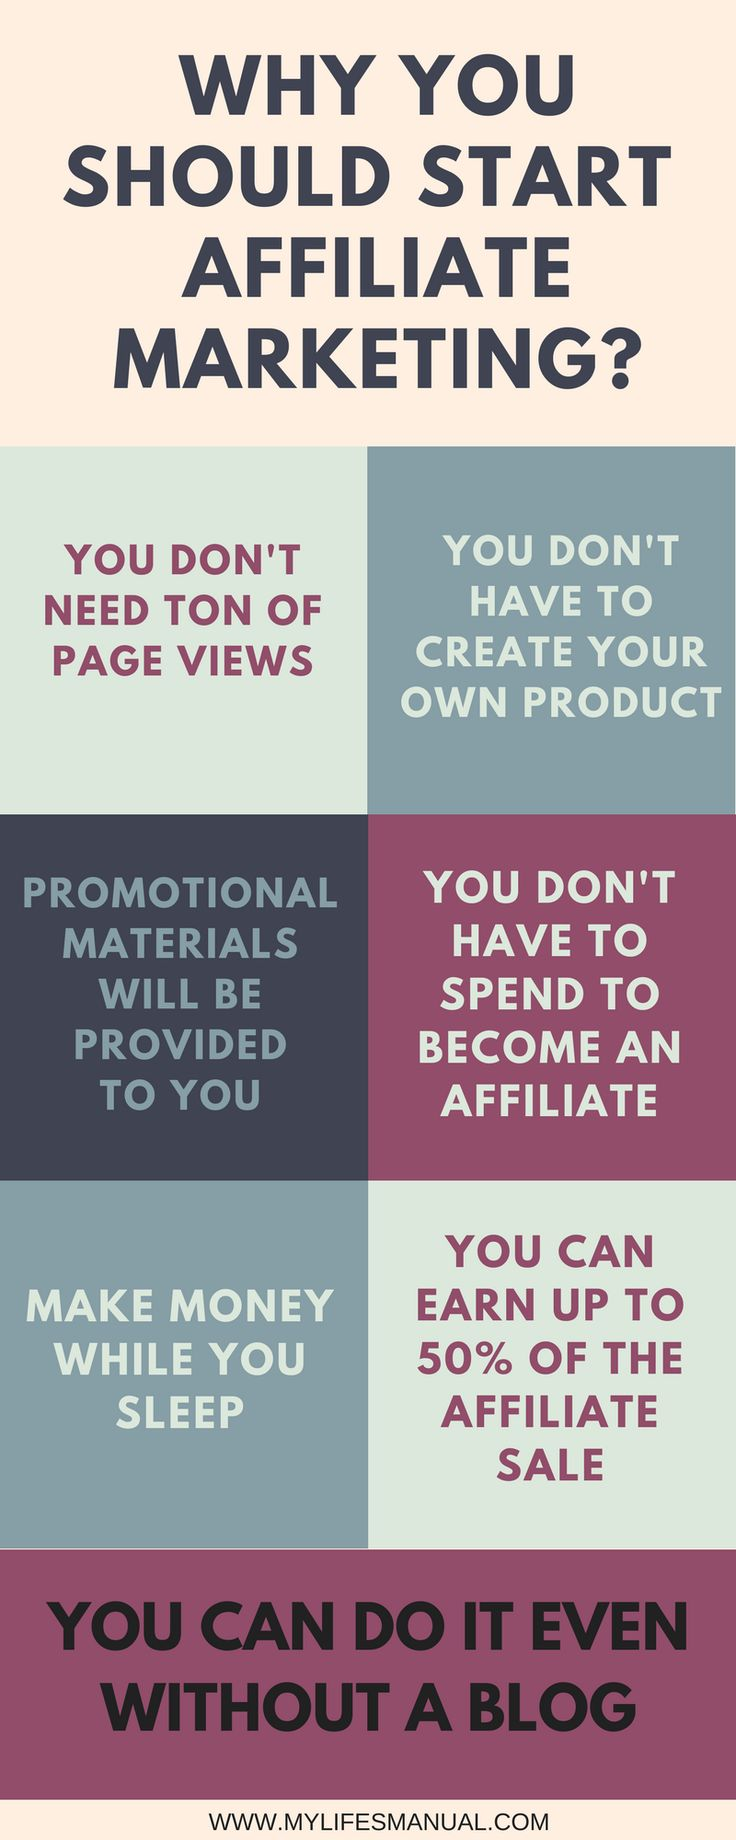 Reasons why new blogger should start affiliate marketing. New bloggers can make affiliate sales without ton of page views. Blogging tips. Make passive income. Make money from your blog. Make money online.